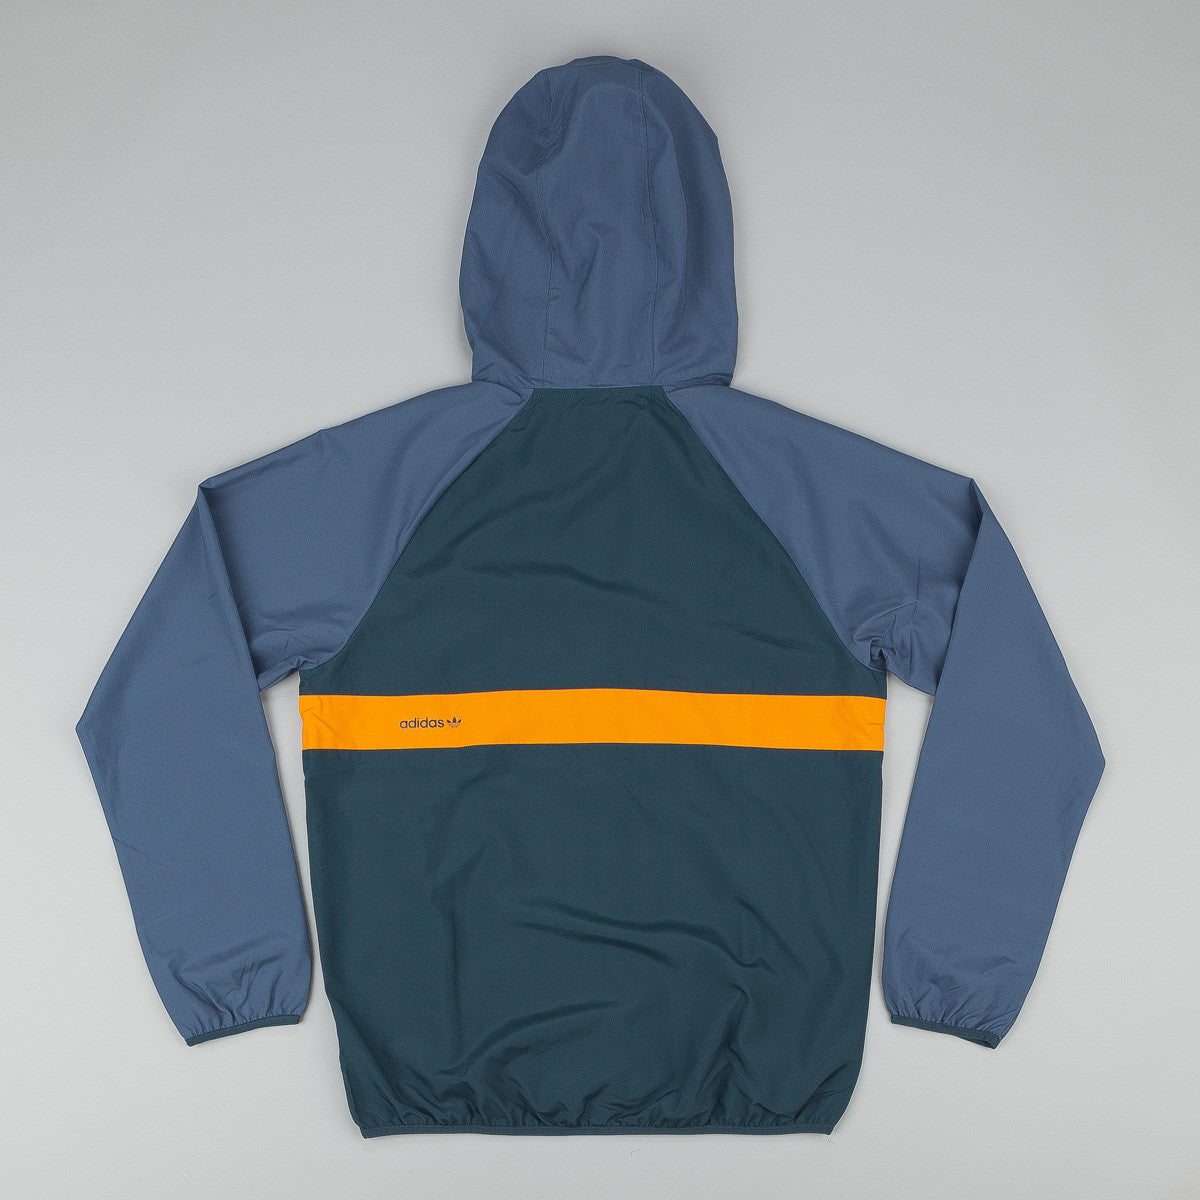 Adidas ADV Wind Jacket - Oxford Blue / Orange